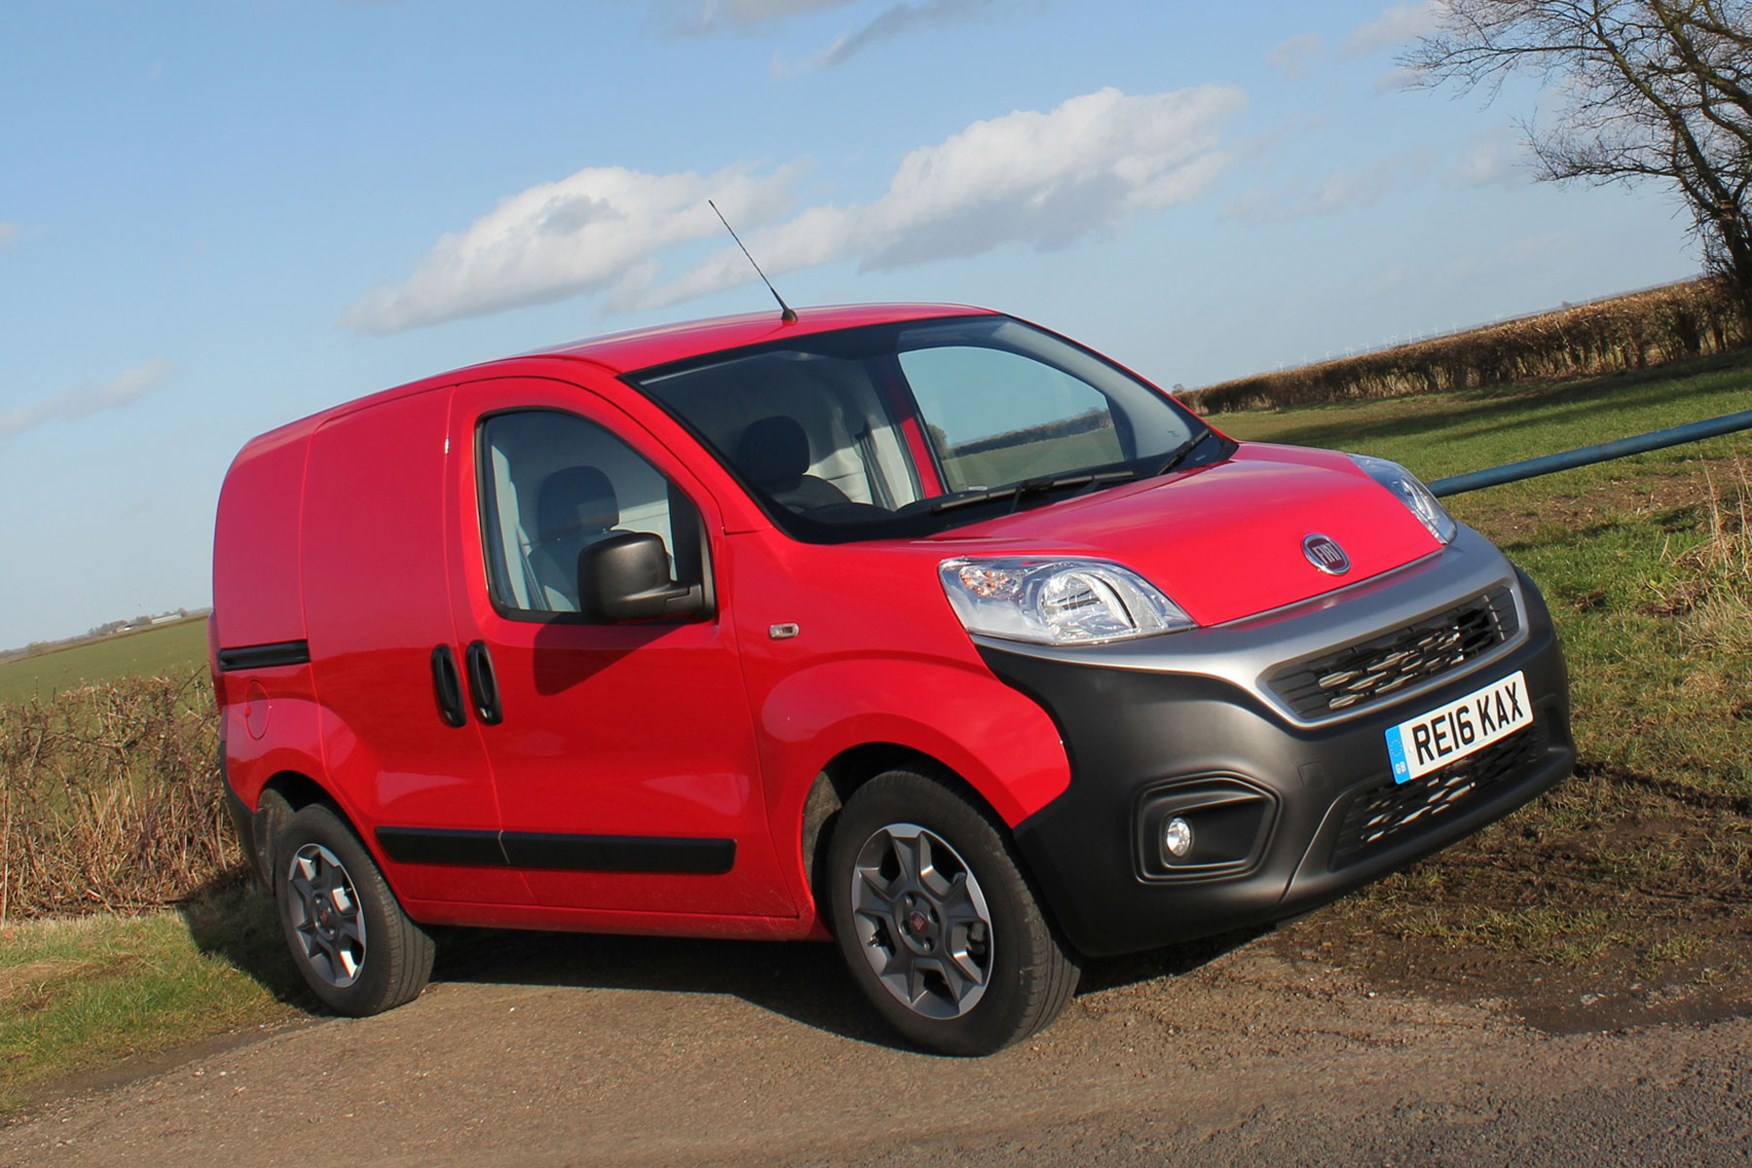 Fiat Fiorino review - front view, red, jaunty